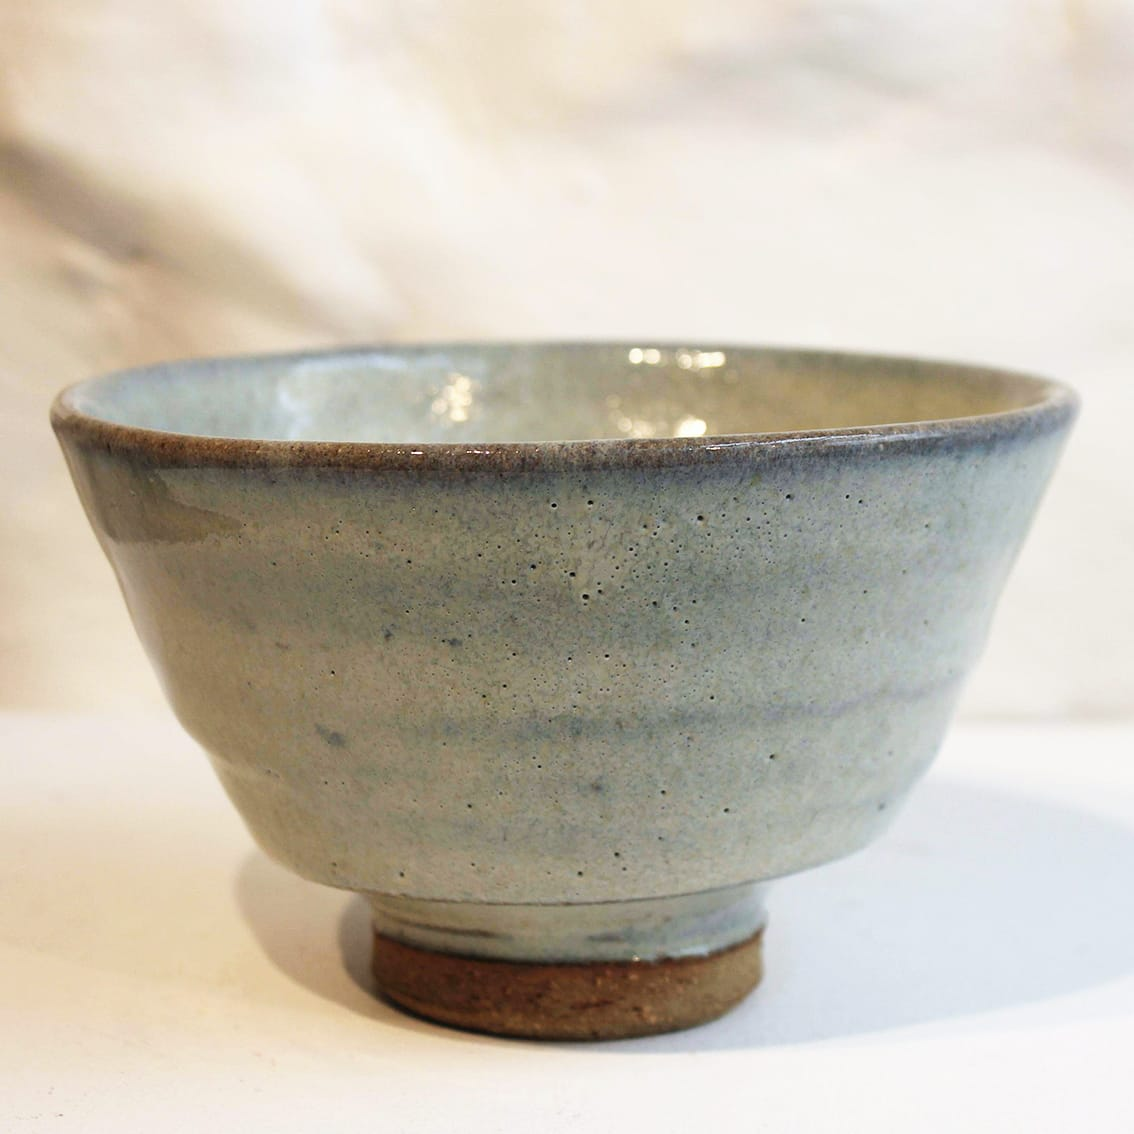 """<span class=""""link fancybox-details-link""""><a href=""""/artists/200-matthew-tyas/works/5457-matthew-tyas-nuka-chawan-bowl-2018/"""">View Detail Page</a></span><div class=""""artist""""><strong>Matthew Tyas</strong></div> <div class=""""title""""><em>Nuka Chawan Bowl</em>, 2018</div> <div class=""""signed_and_dated"""">stamped by the artist</div> <div class=""""medium"""">glazed thrown stoneware</div><div class=""""price"""">£75.00</div><div class=""""copyright_line"""">Copyright The Artist</div>"""